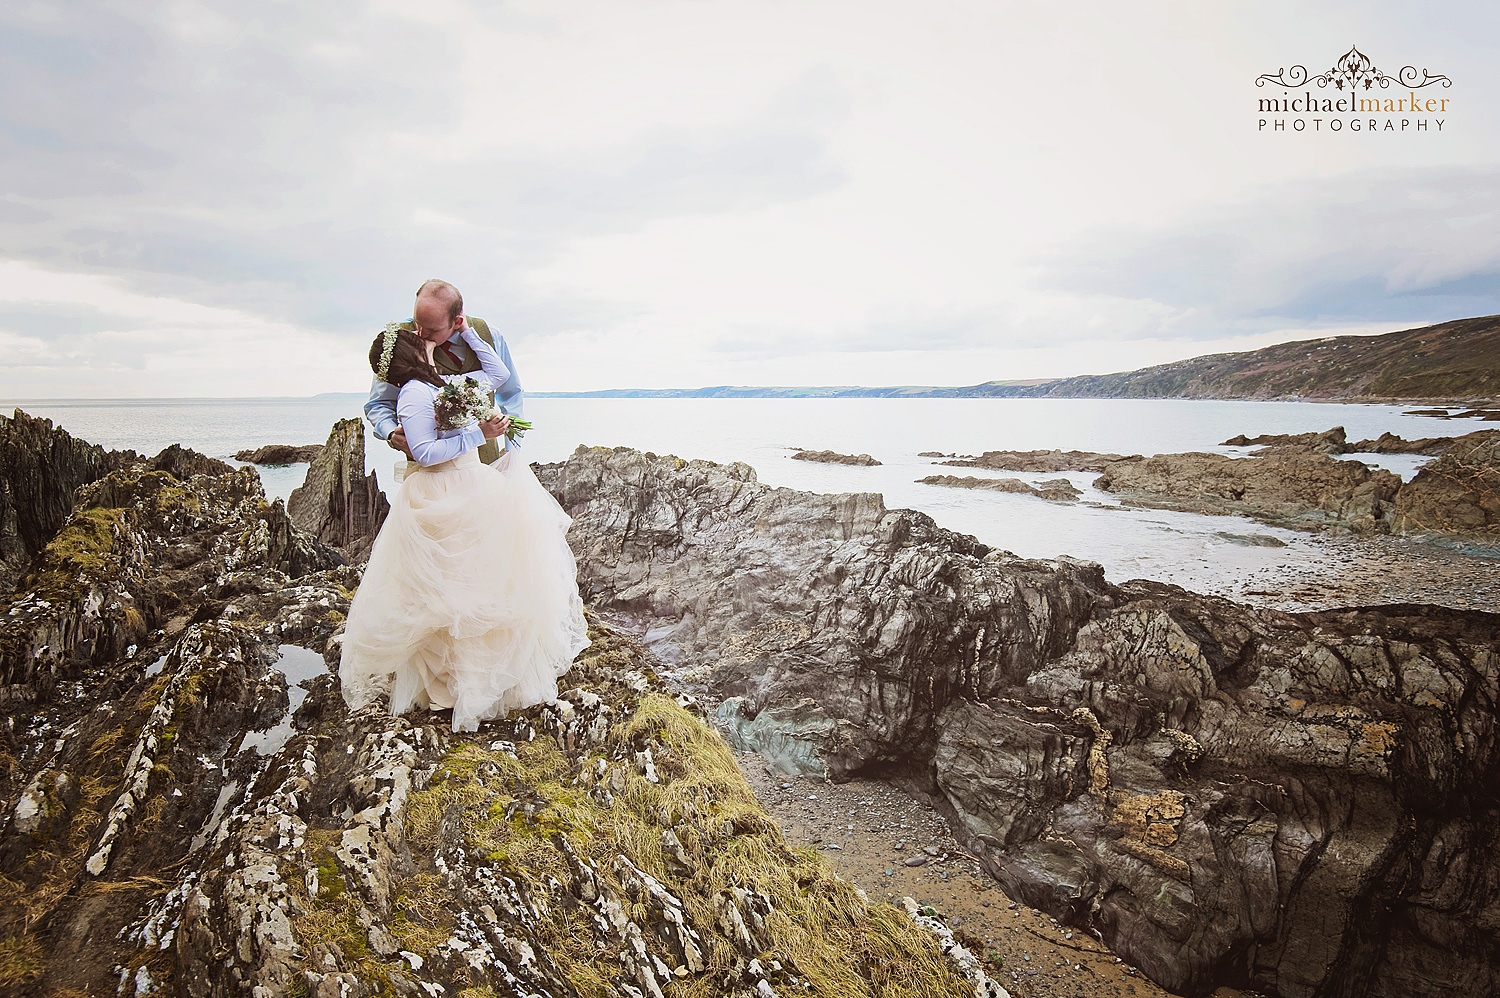 Bride and groom kiss on rocks at Cornish beach wedding